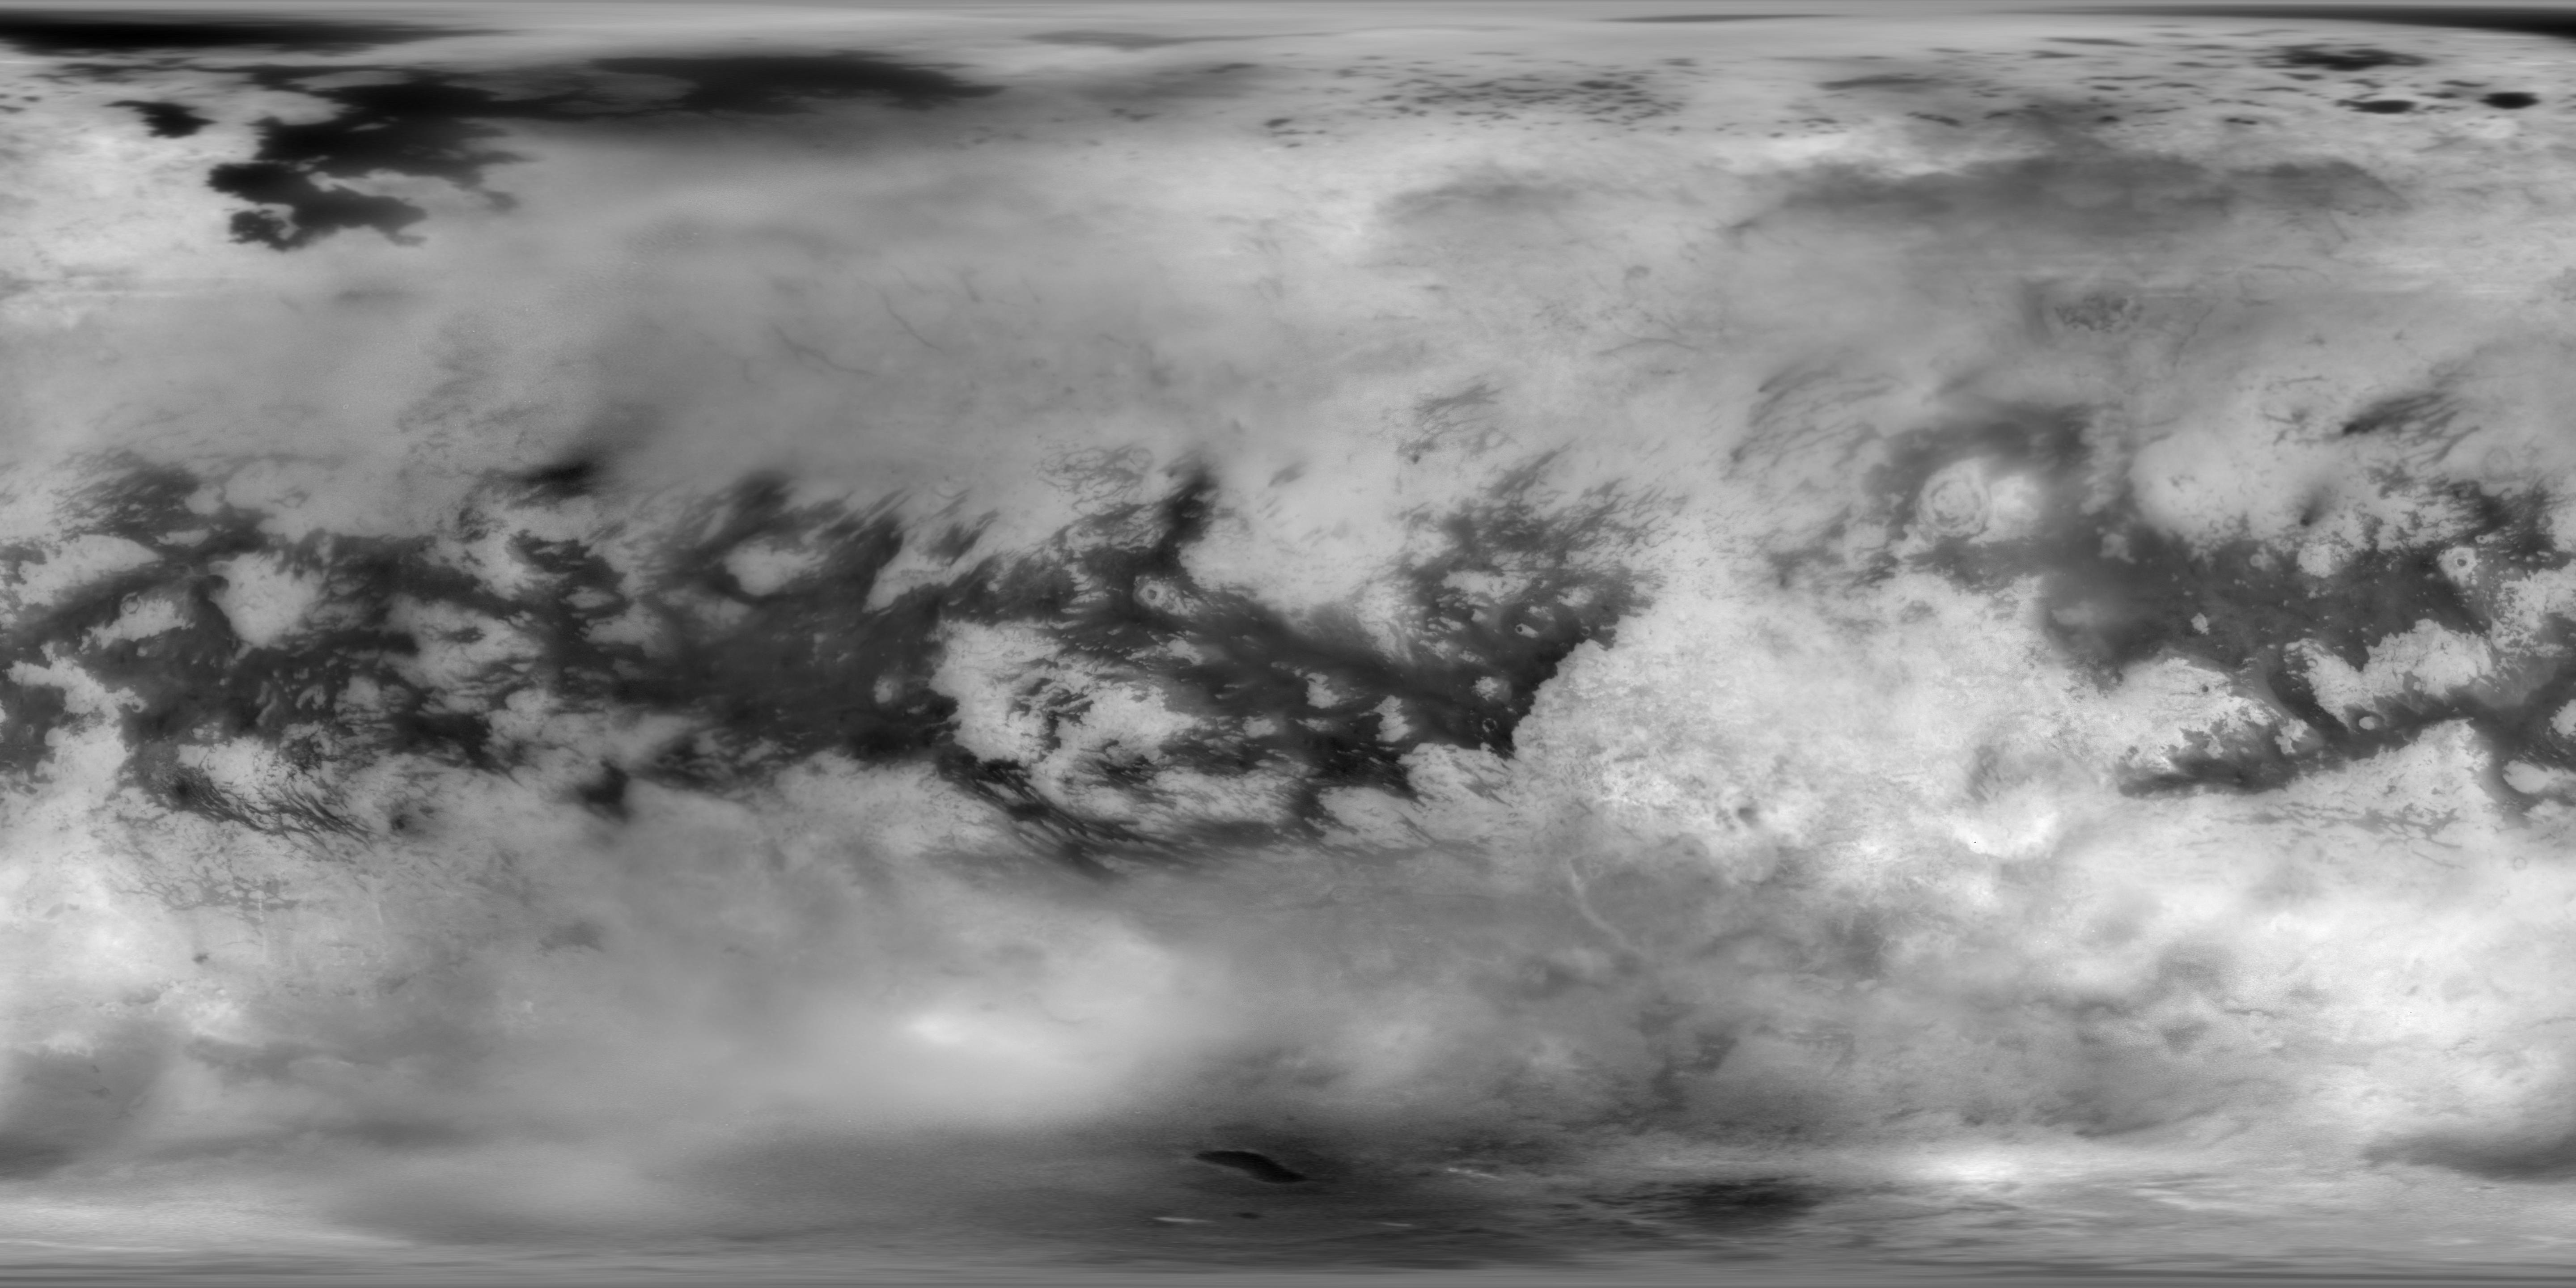 This global mosaic of Titans surface was generated by combining 9,873 separate ISS images taken by NASAs Cassini spacecraft over more than 13 years of Cassini operations at Saturn.